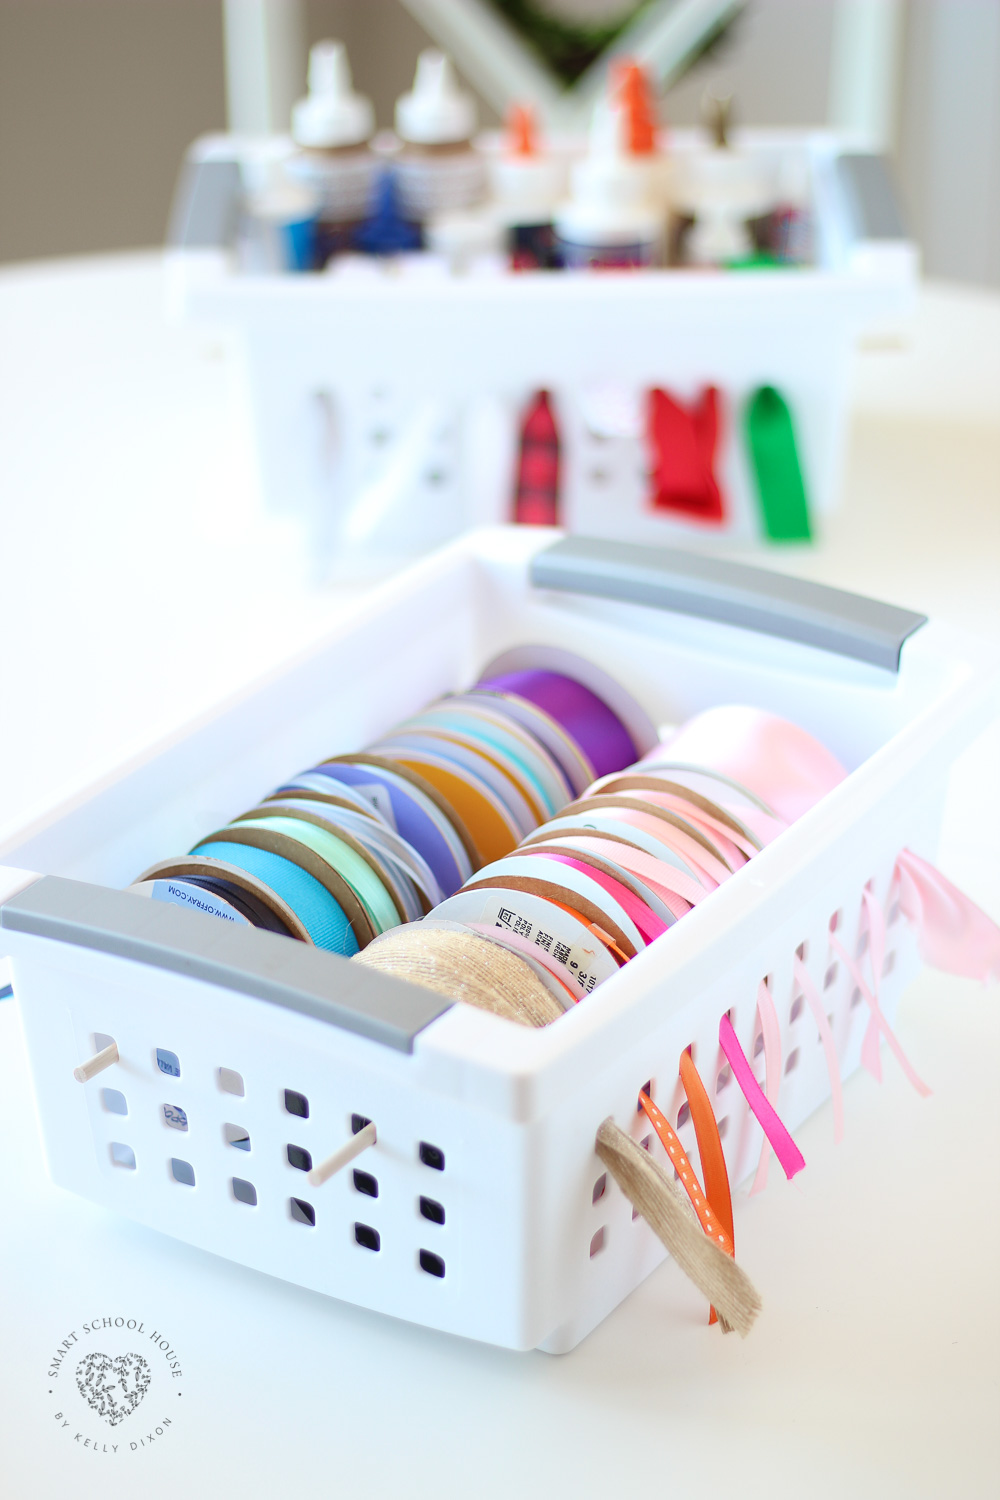 Ribbon Storage in a Basket - For this, I used plastic bins with small wooden dowels. It's ribbon perfection I tell you!